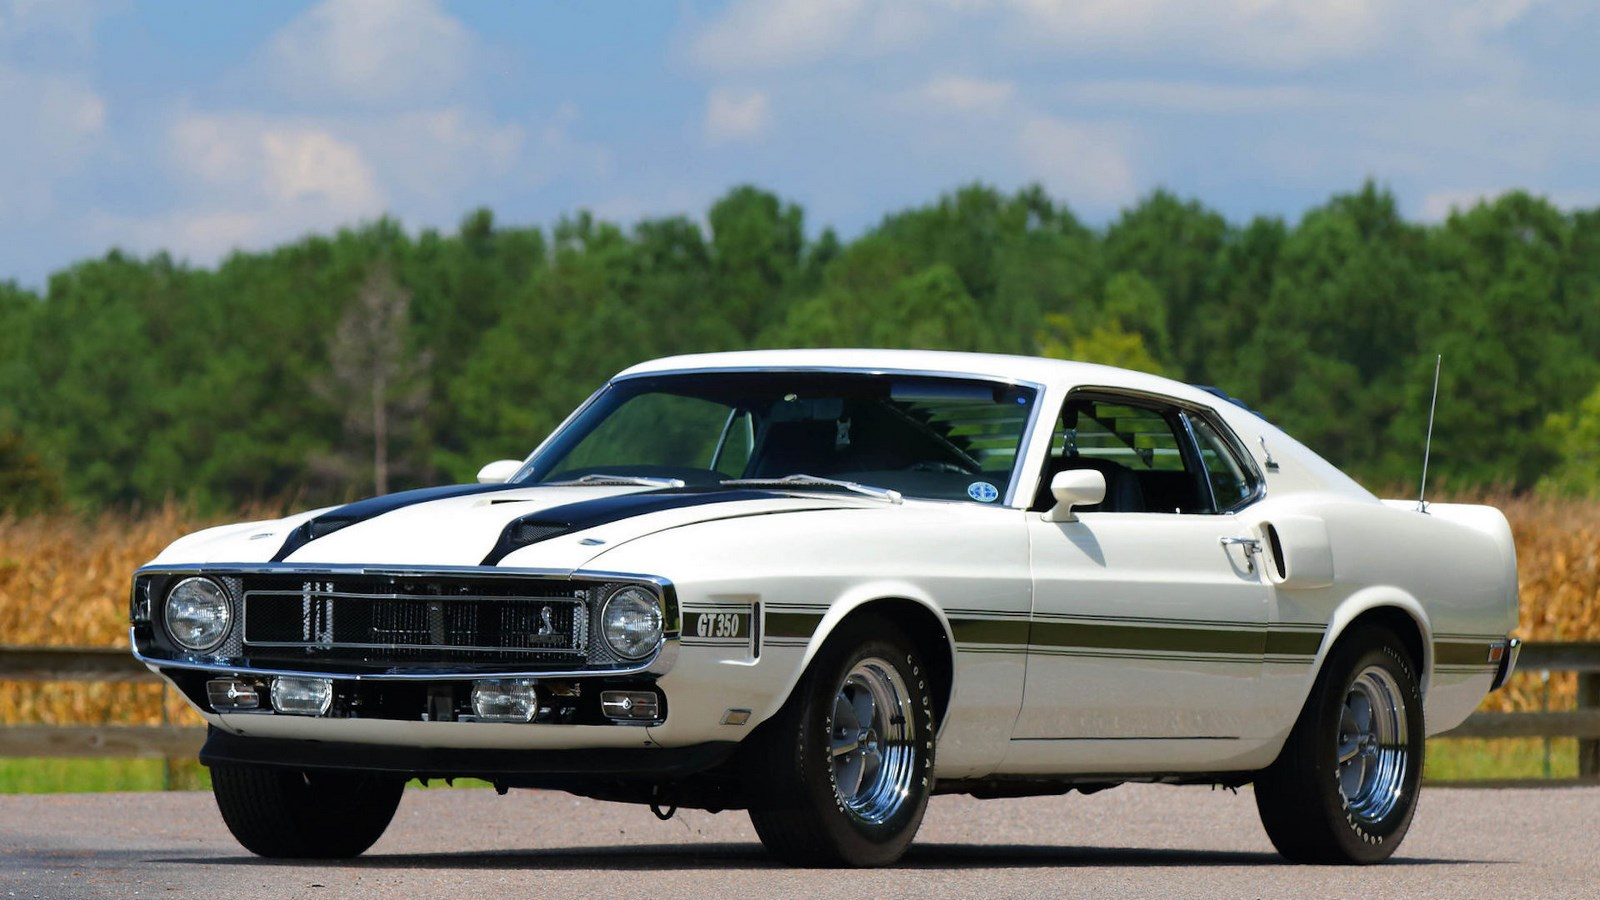 A 1970 Shelby Mustang Gt350 Is Up For Auction